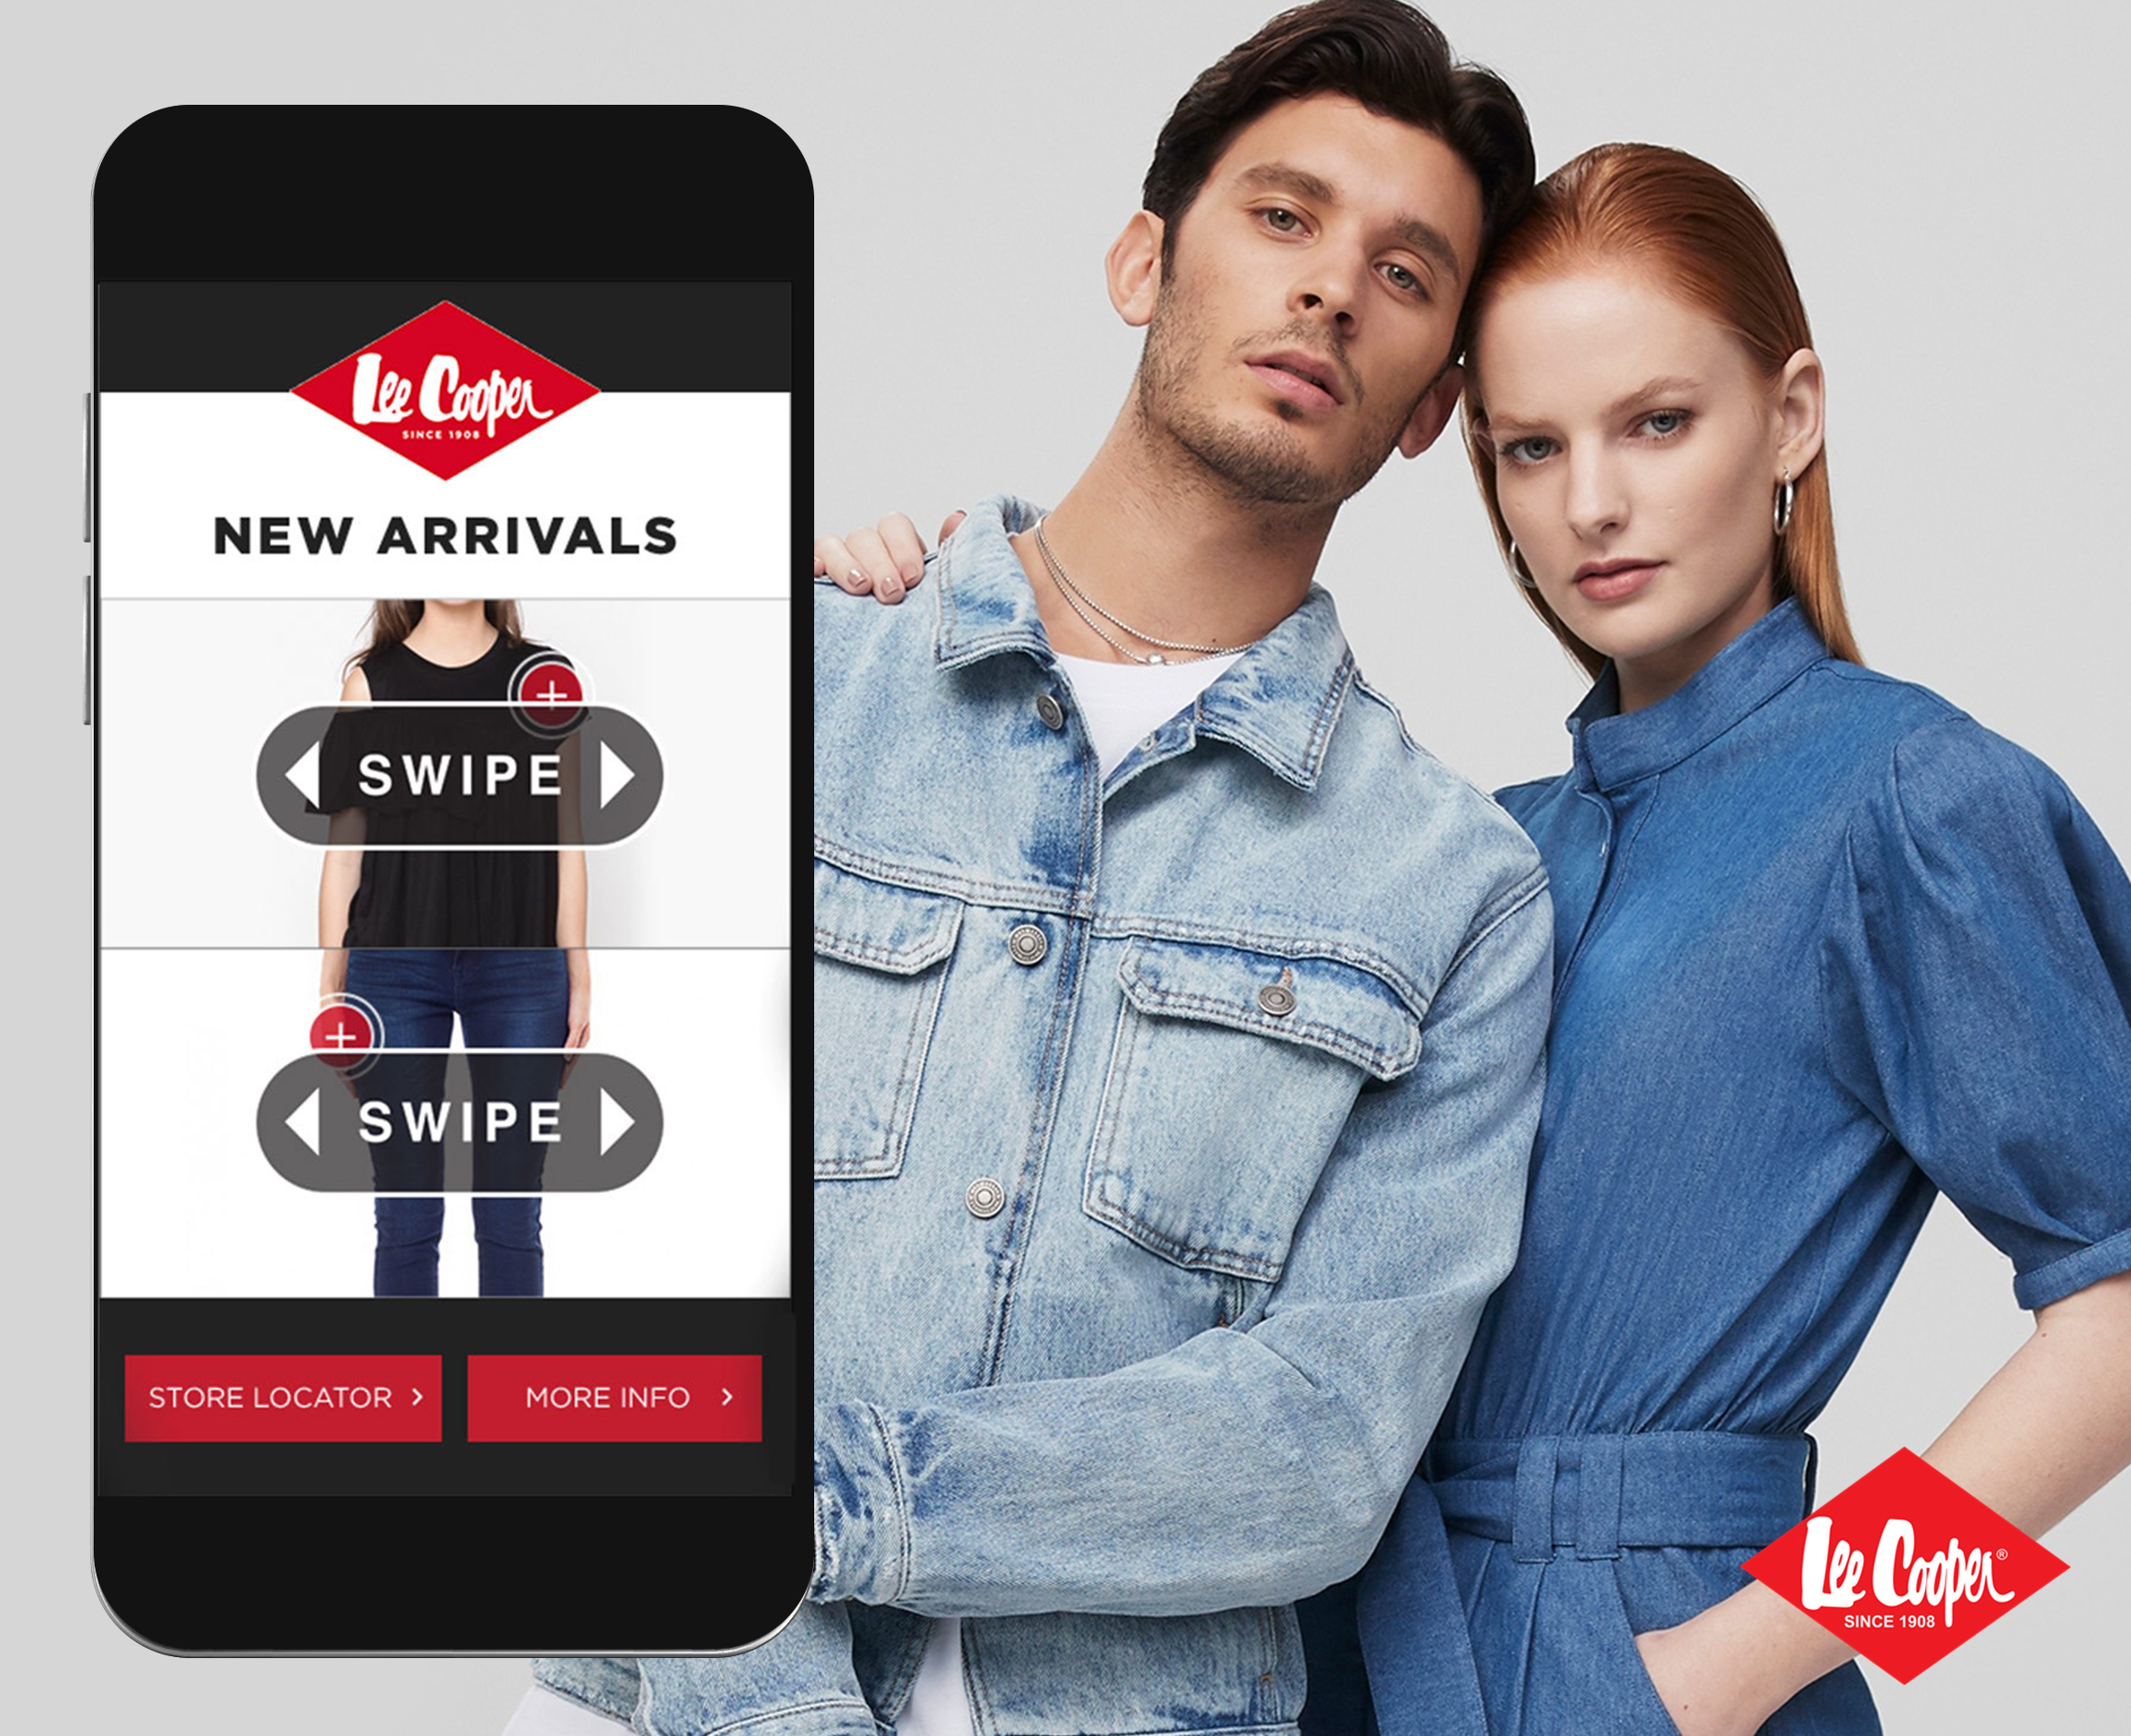 Lee Cooper interactive mobile ad